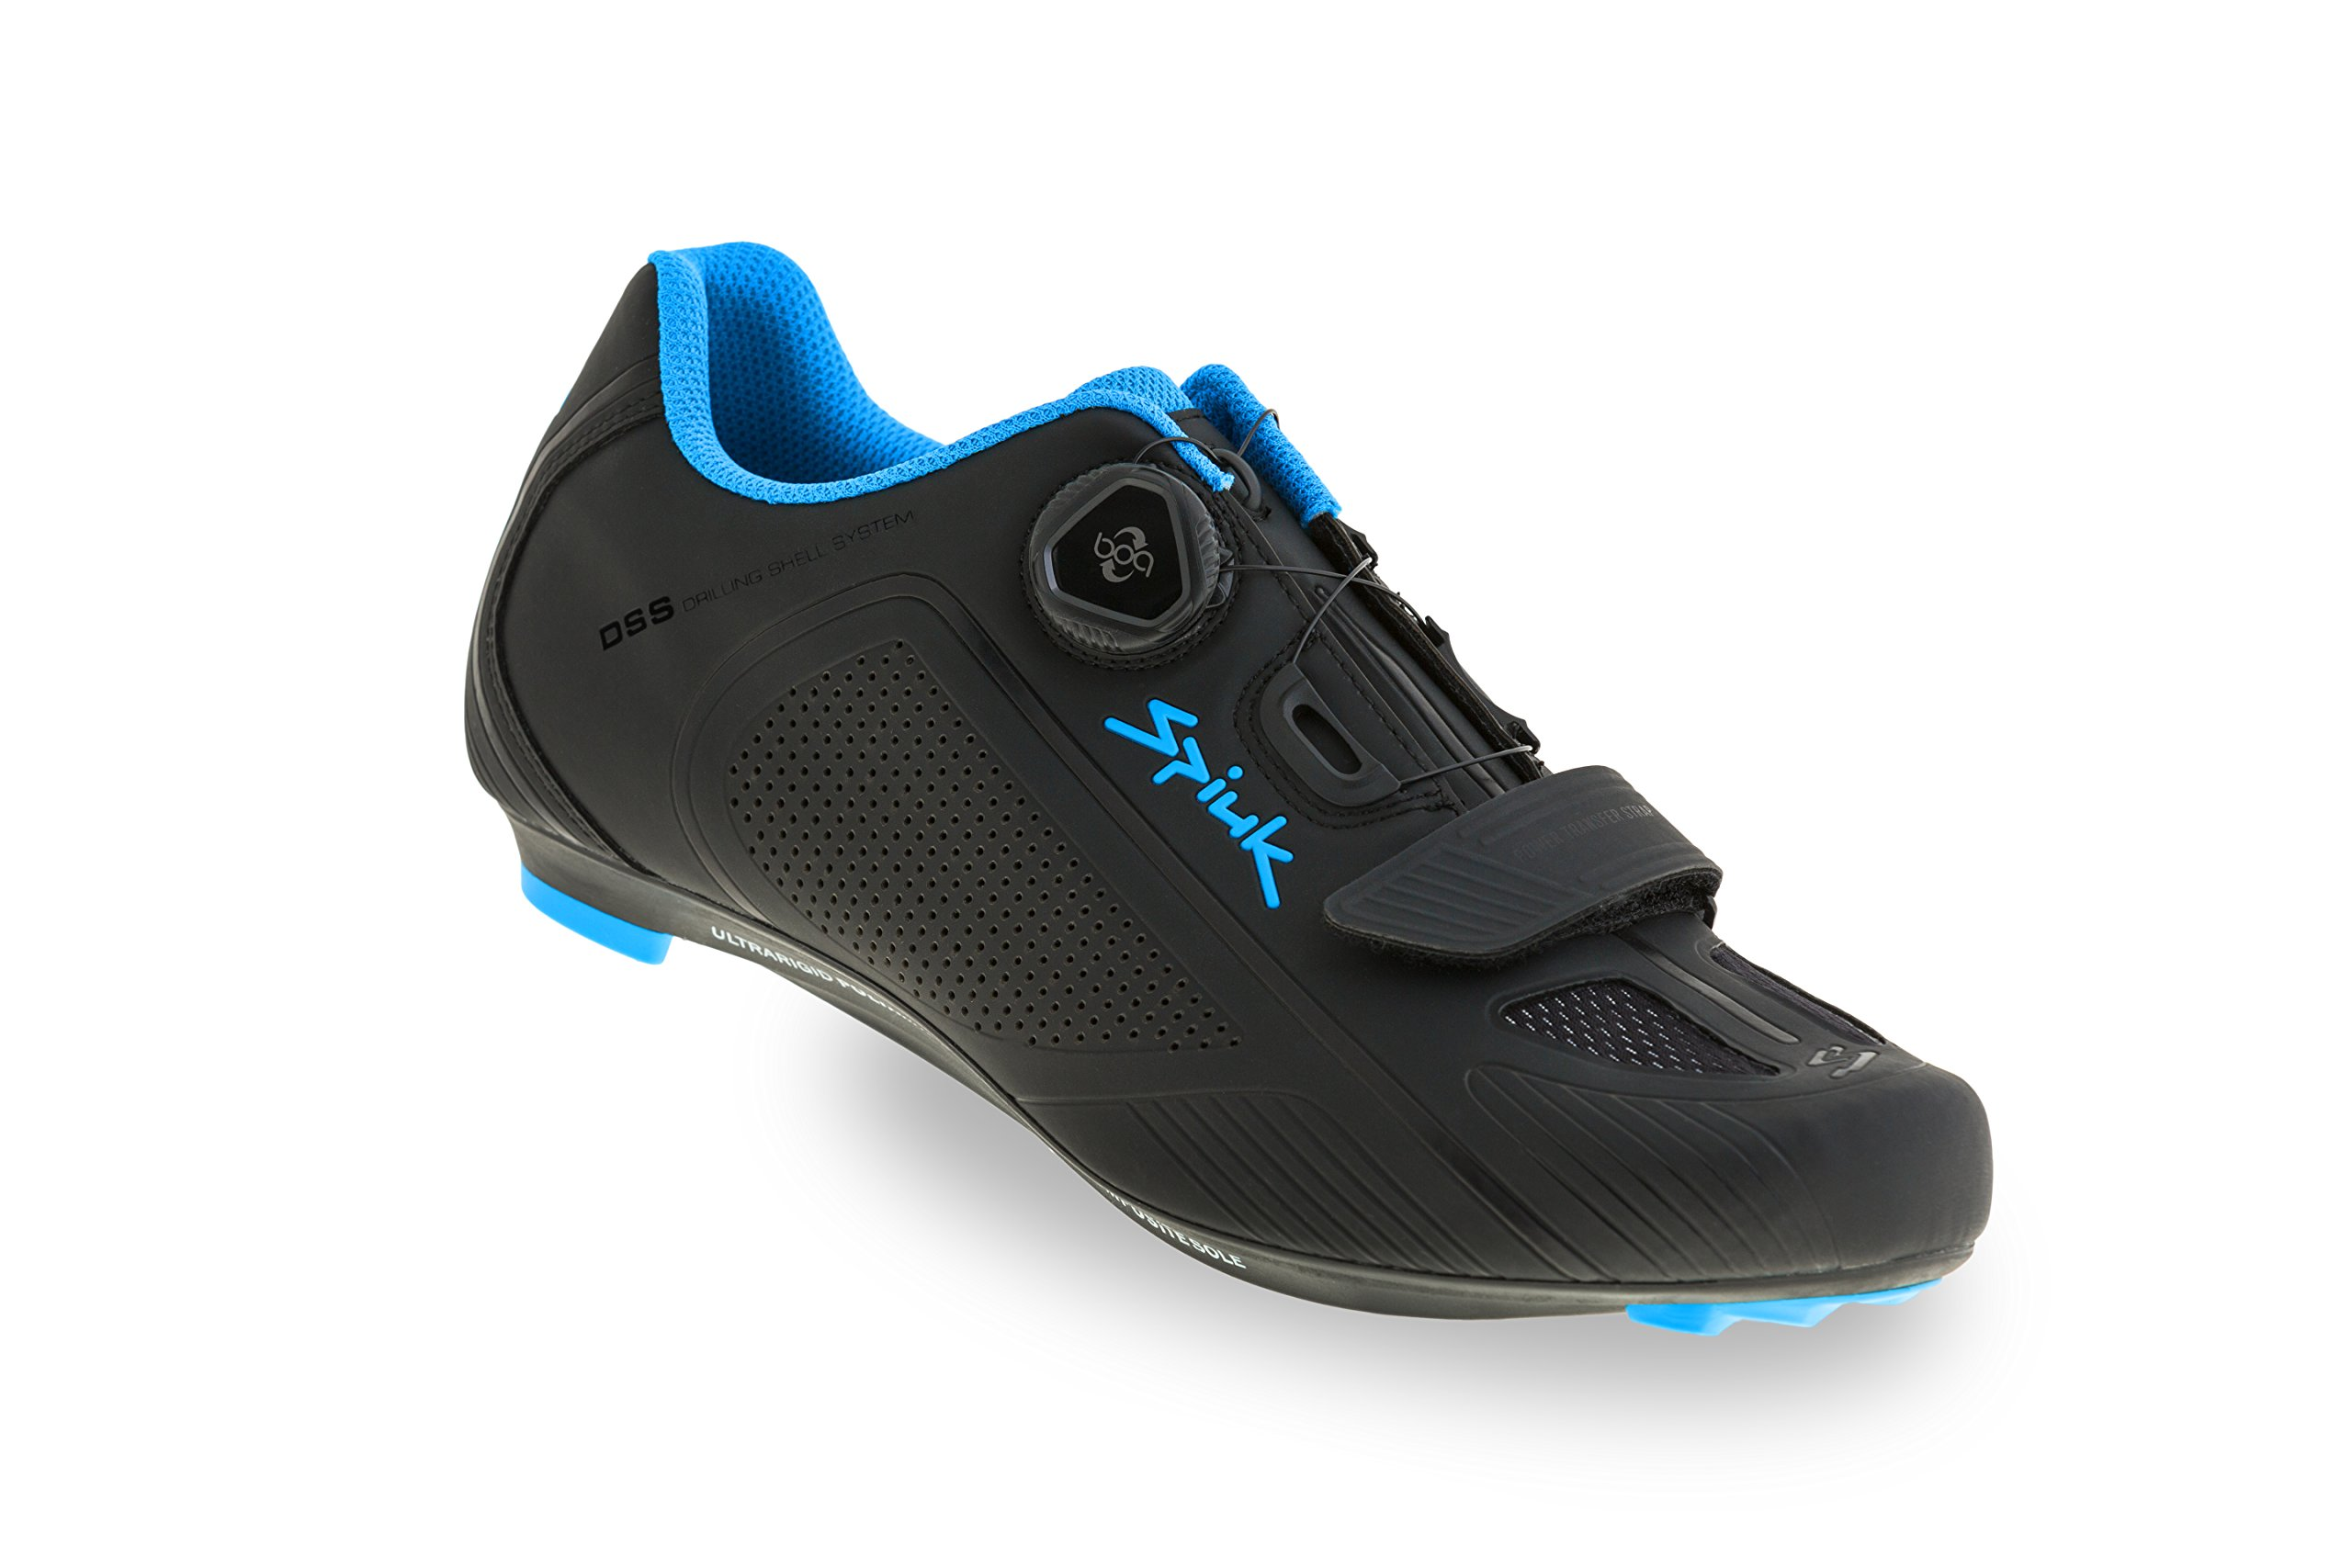 Spiuk Altube Road Zapatilla, Unisex Adulto, Negro/Azul, 43 product image